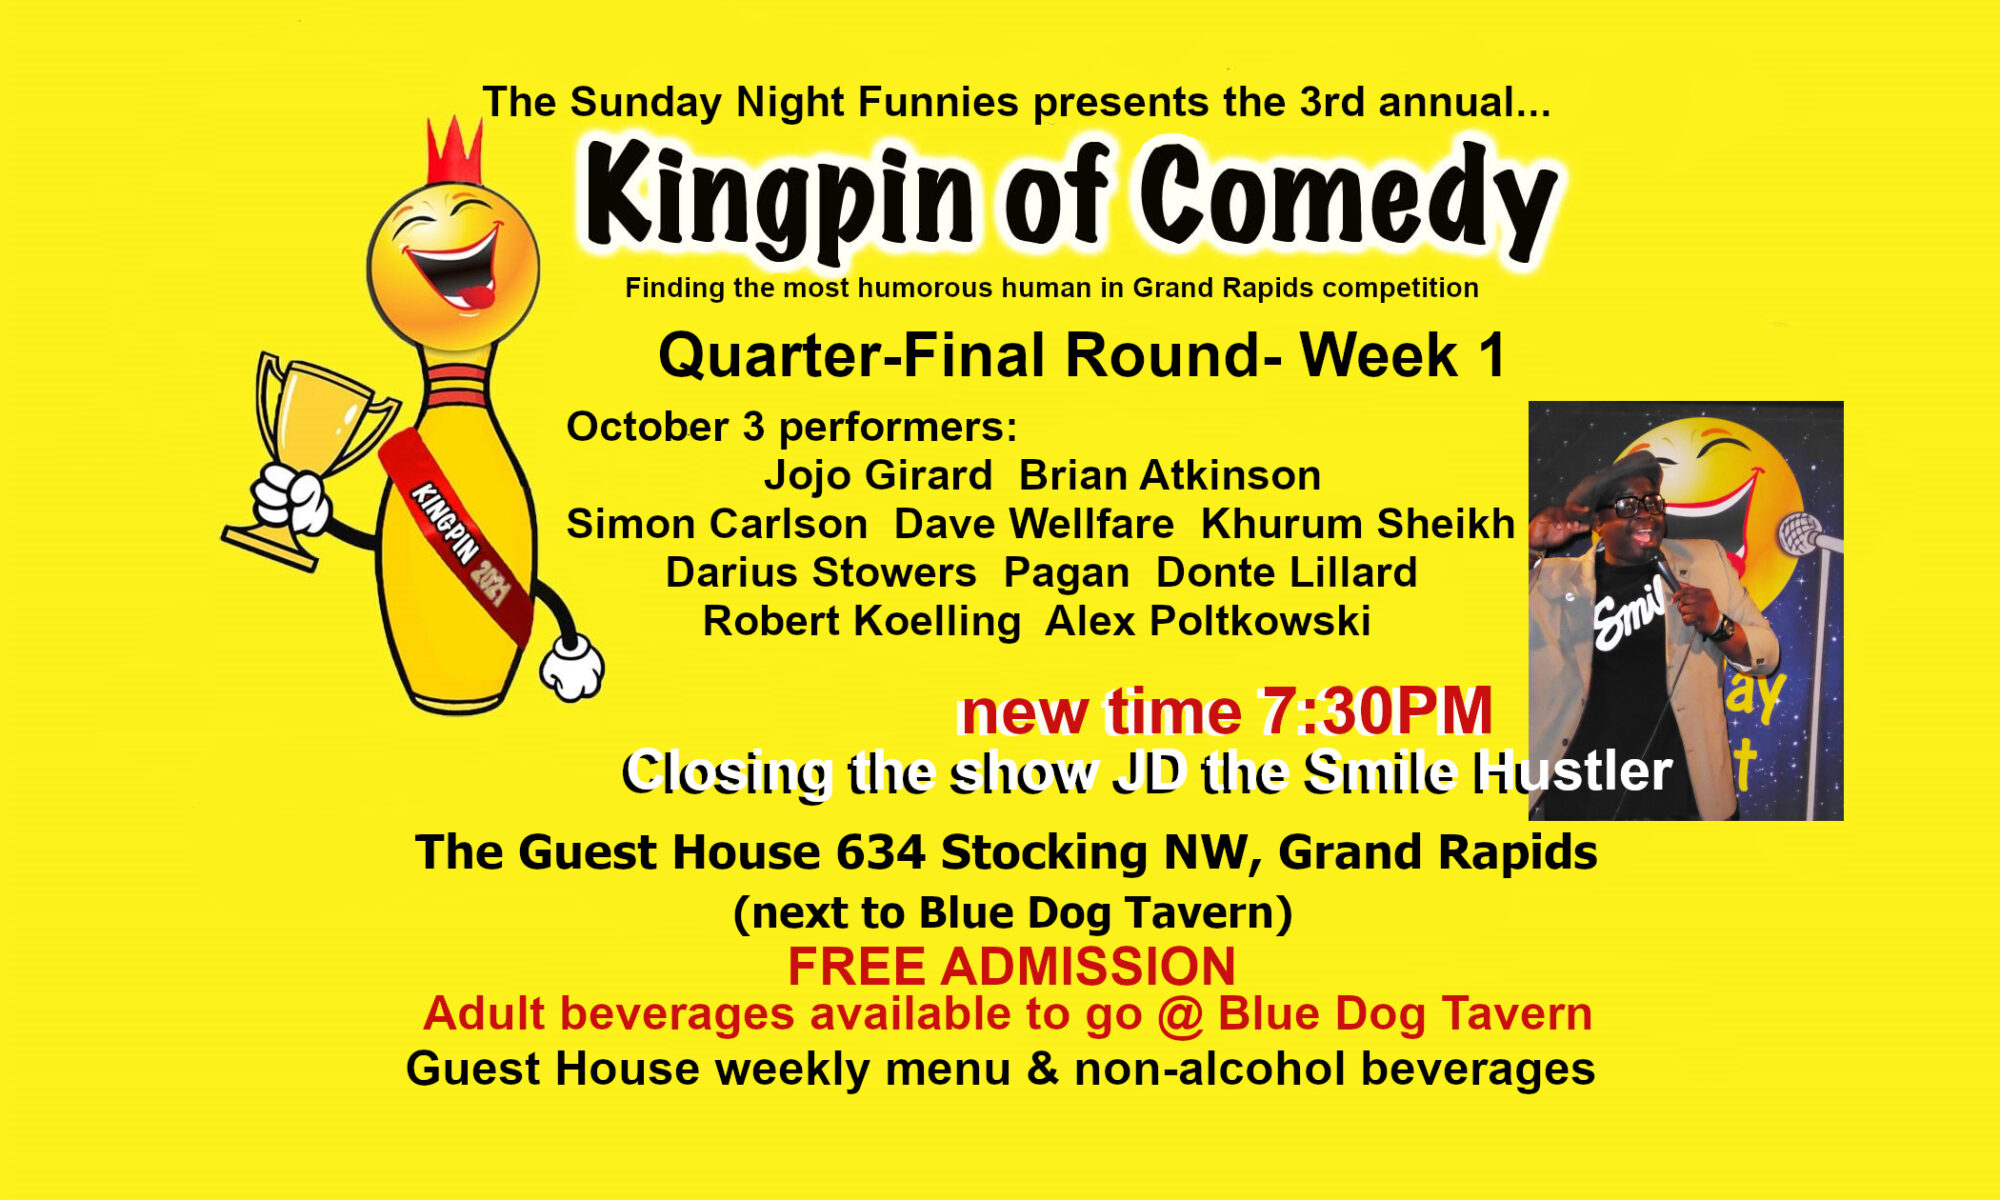 Brian Atkinson performs in the Kingpin of Comedy Quarter-Finals